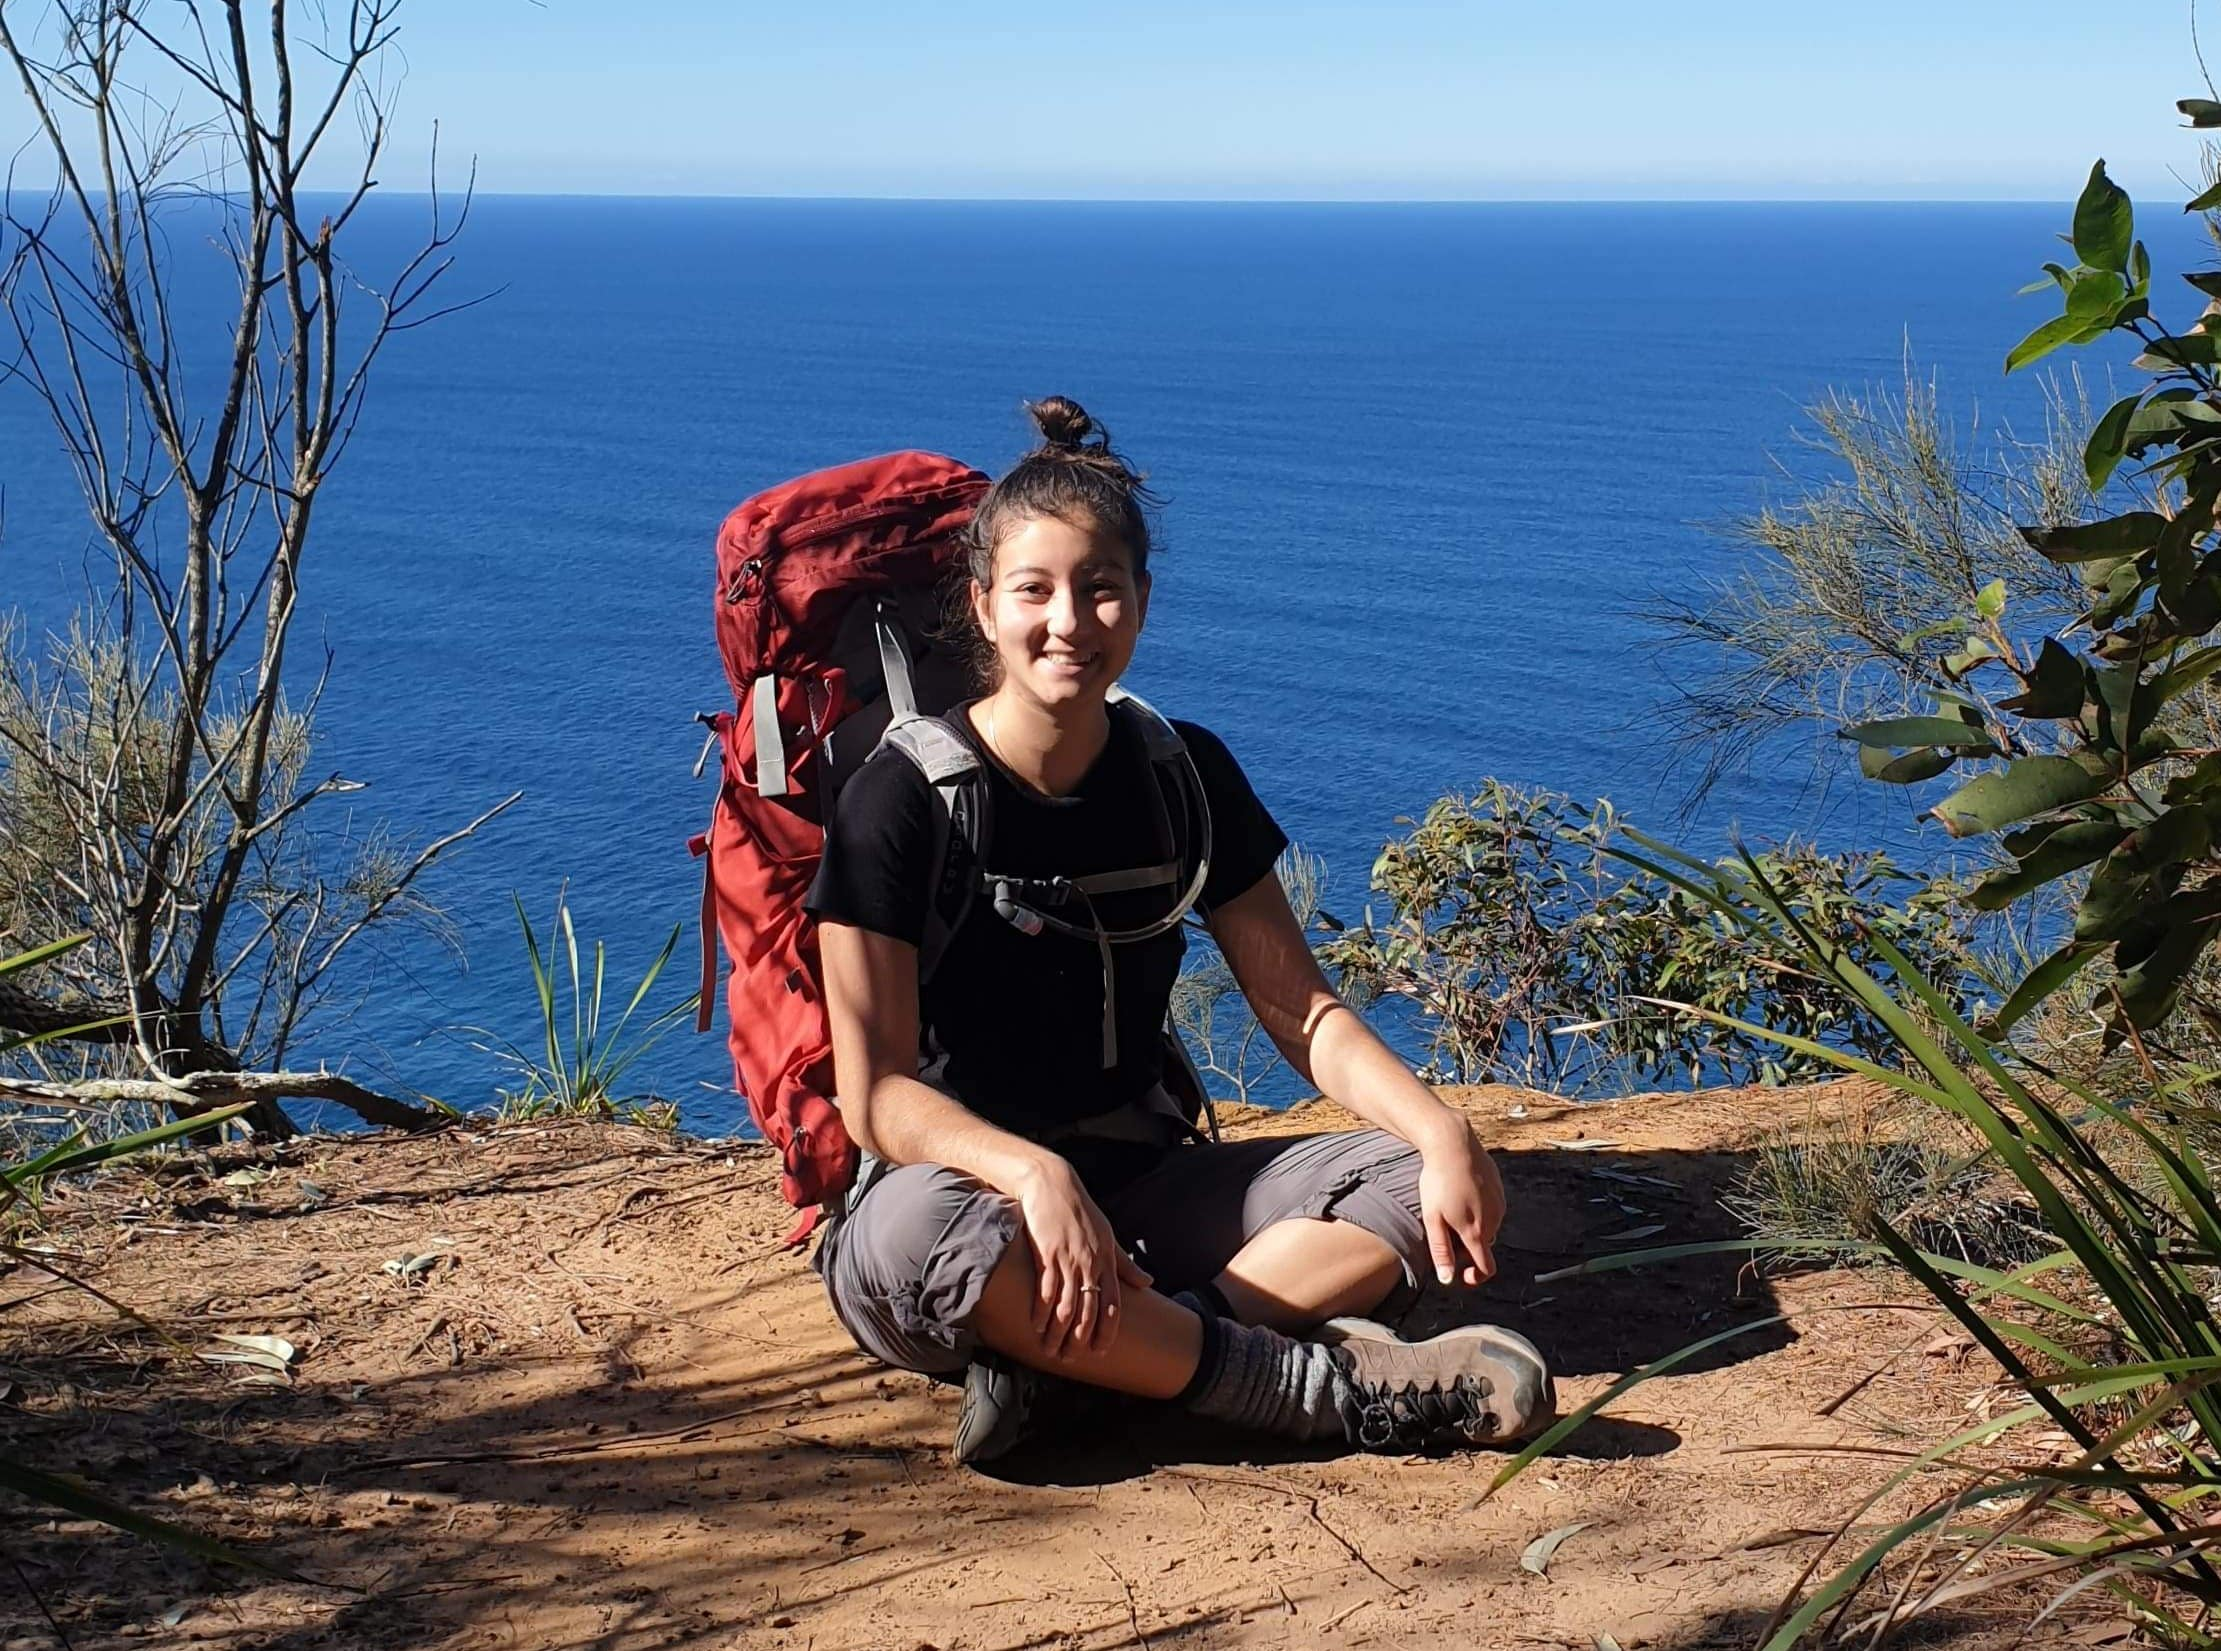 Paddy pallin Team Member Ranuka at home on the trail sitting on a cliff next to the ocean while wearing an osprey pack